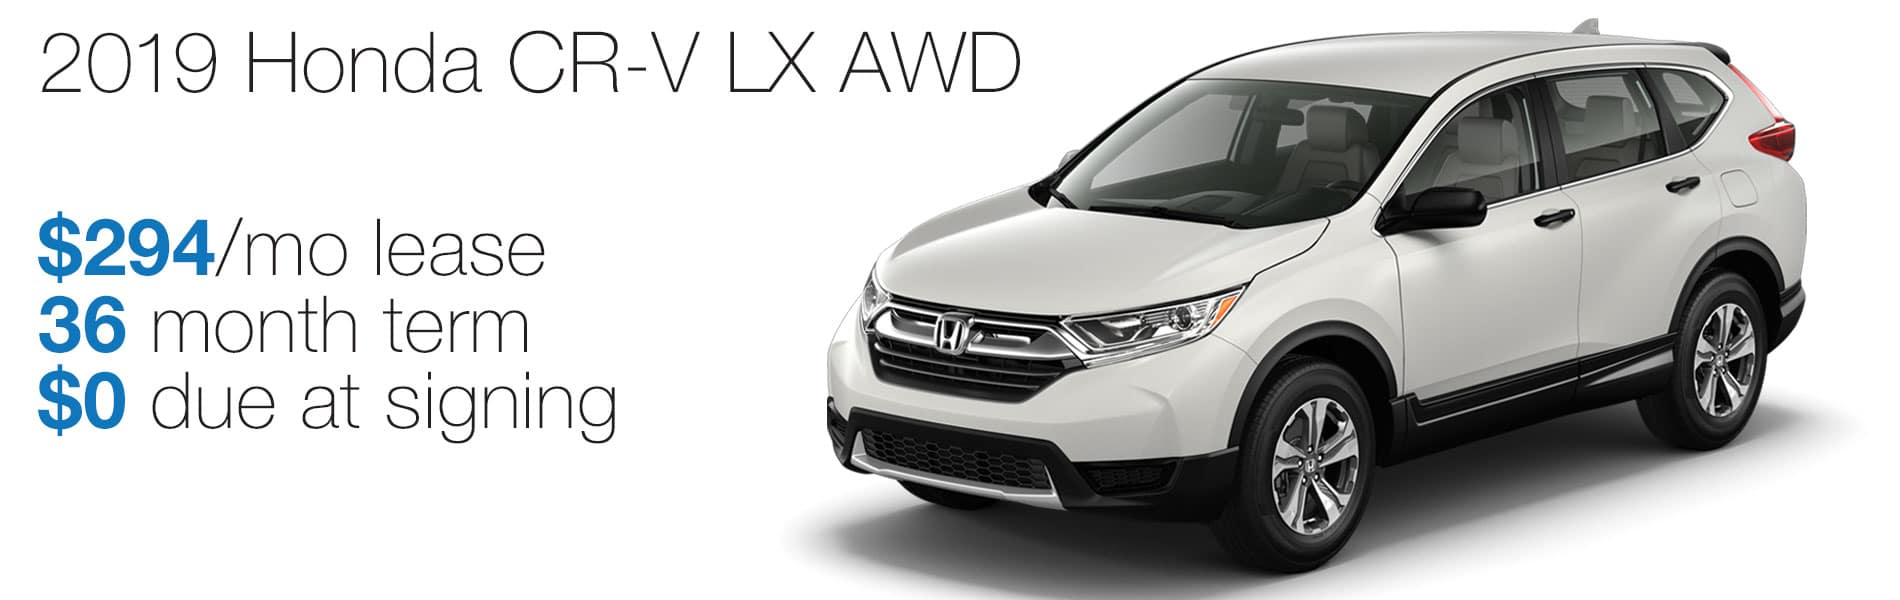 Lease a 2019 Honda CR-V LX AWD for $294 per month lease with $0 due at signing